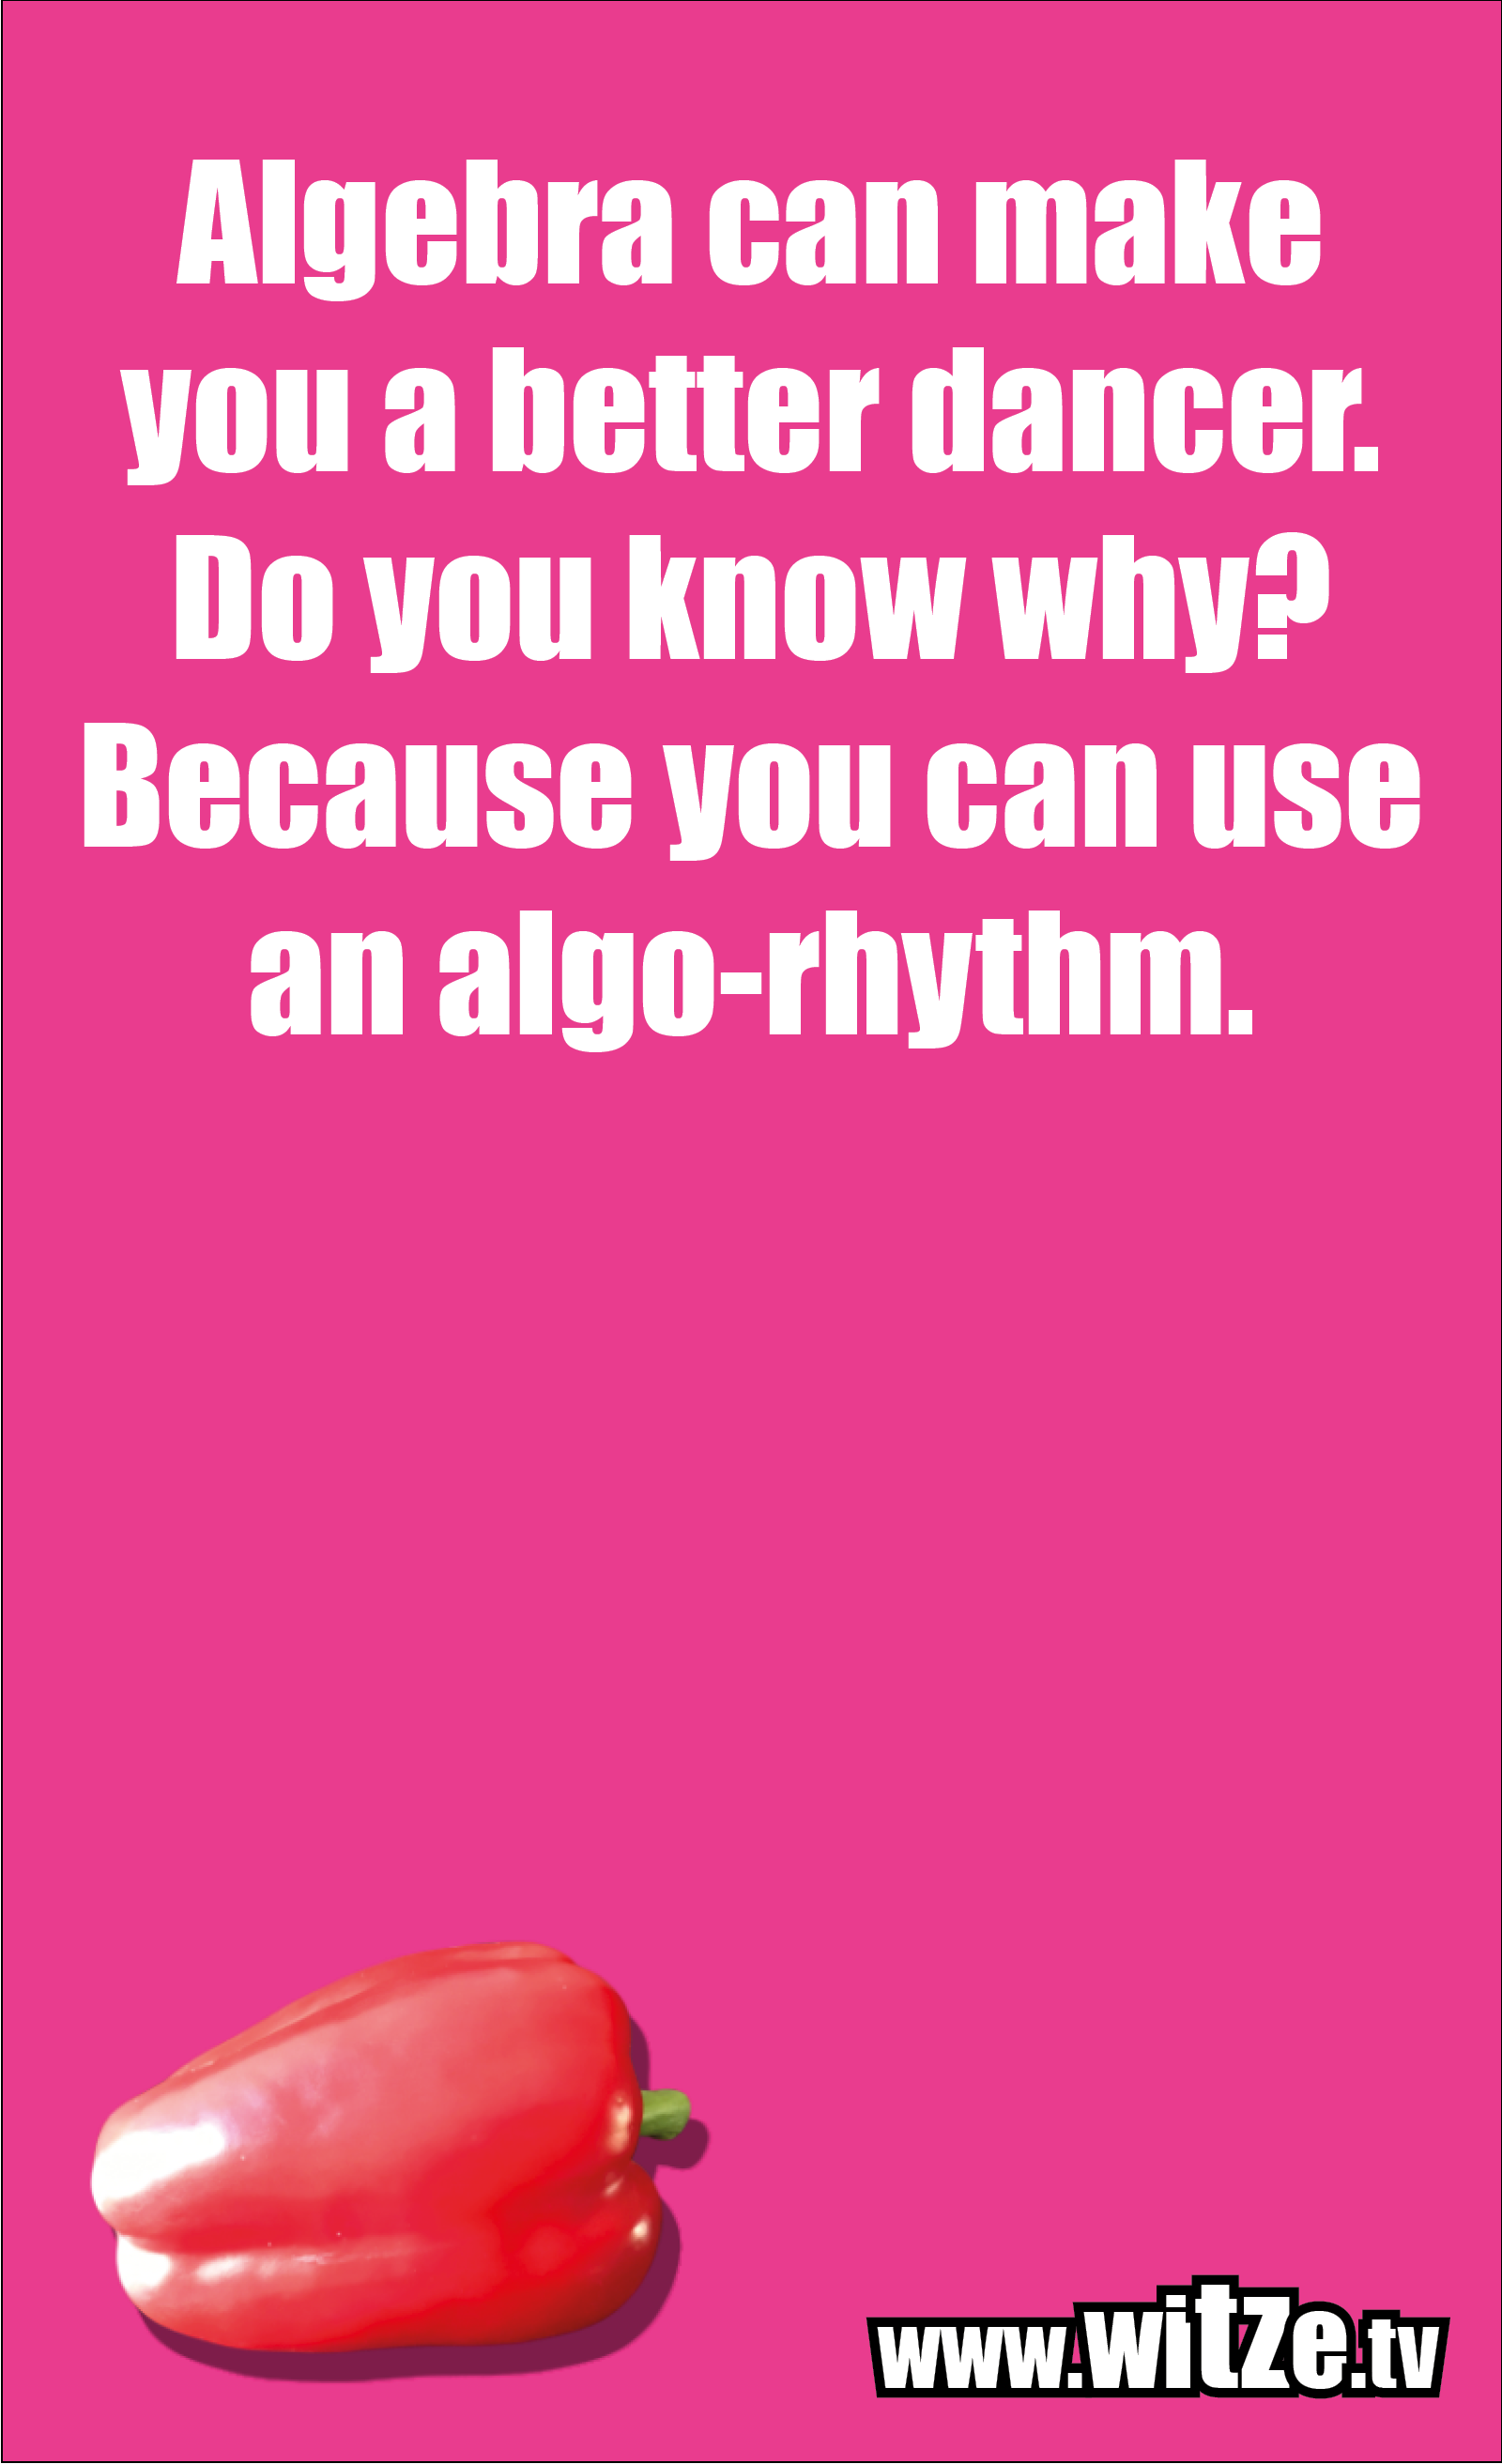 Math joke… Algebra can make you a better dancer. Do you know why? Because you can use an algo-rhythm.